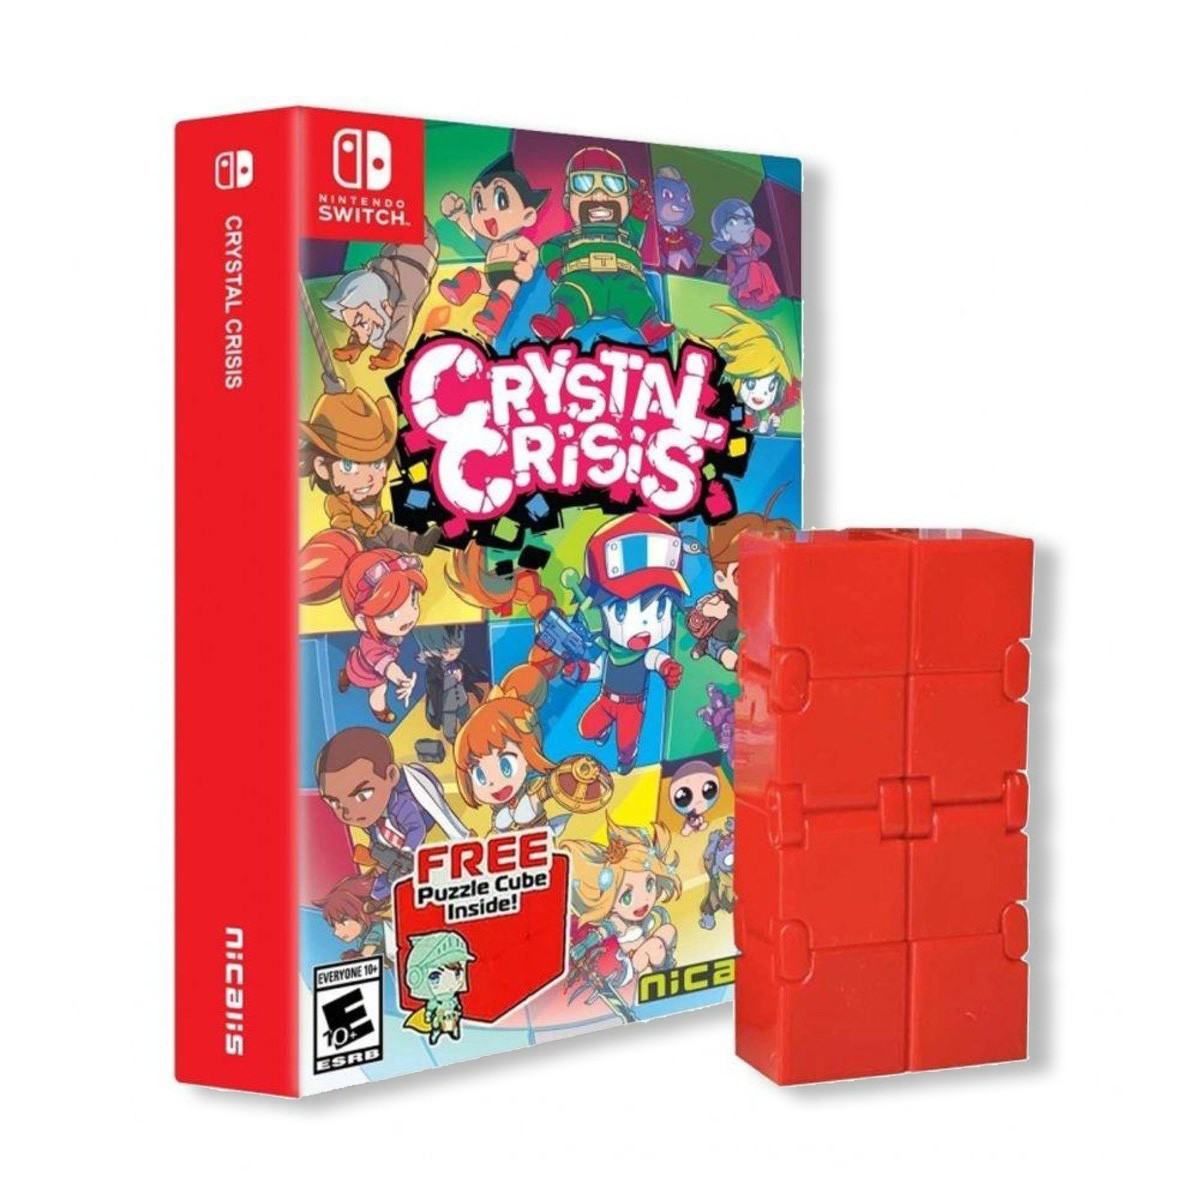 Crystal Crisis Collector's Edition - Switch